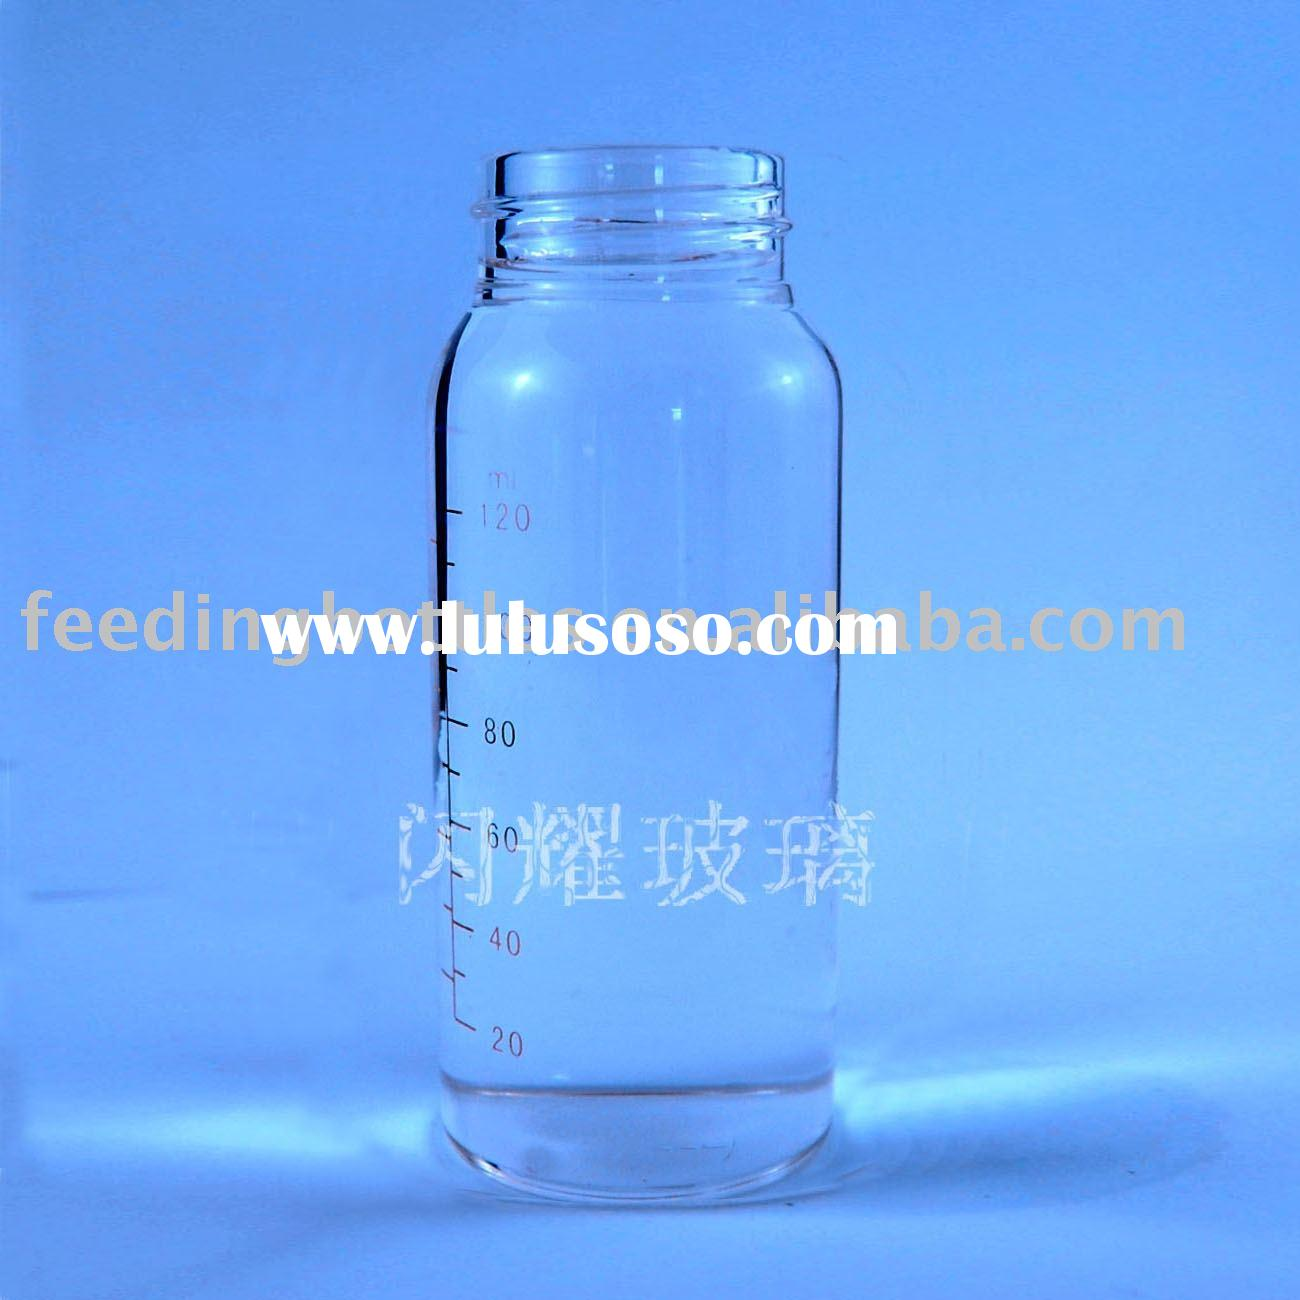 BPA FREE glass baby product